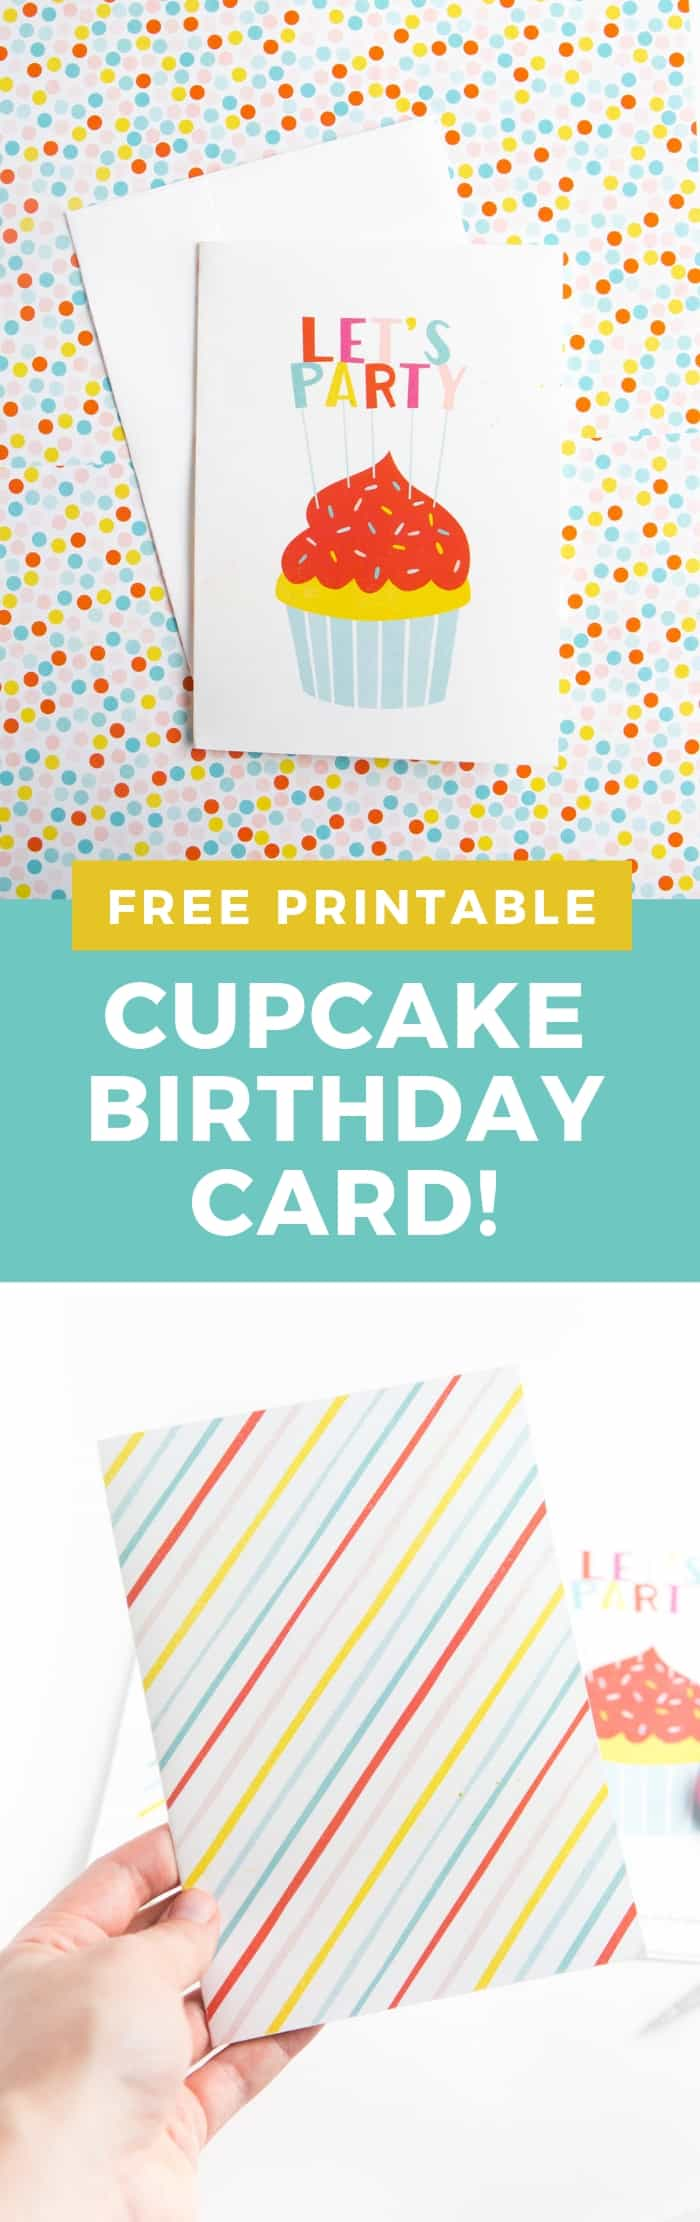 Print off this adorable FREE printable birthday card to help celebrate any occasion! Works great for a last-minute birthday card, bachelorette party, or any celebratory occasion!